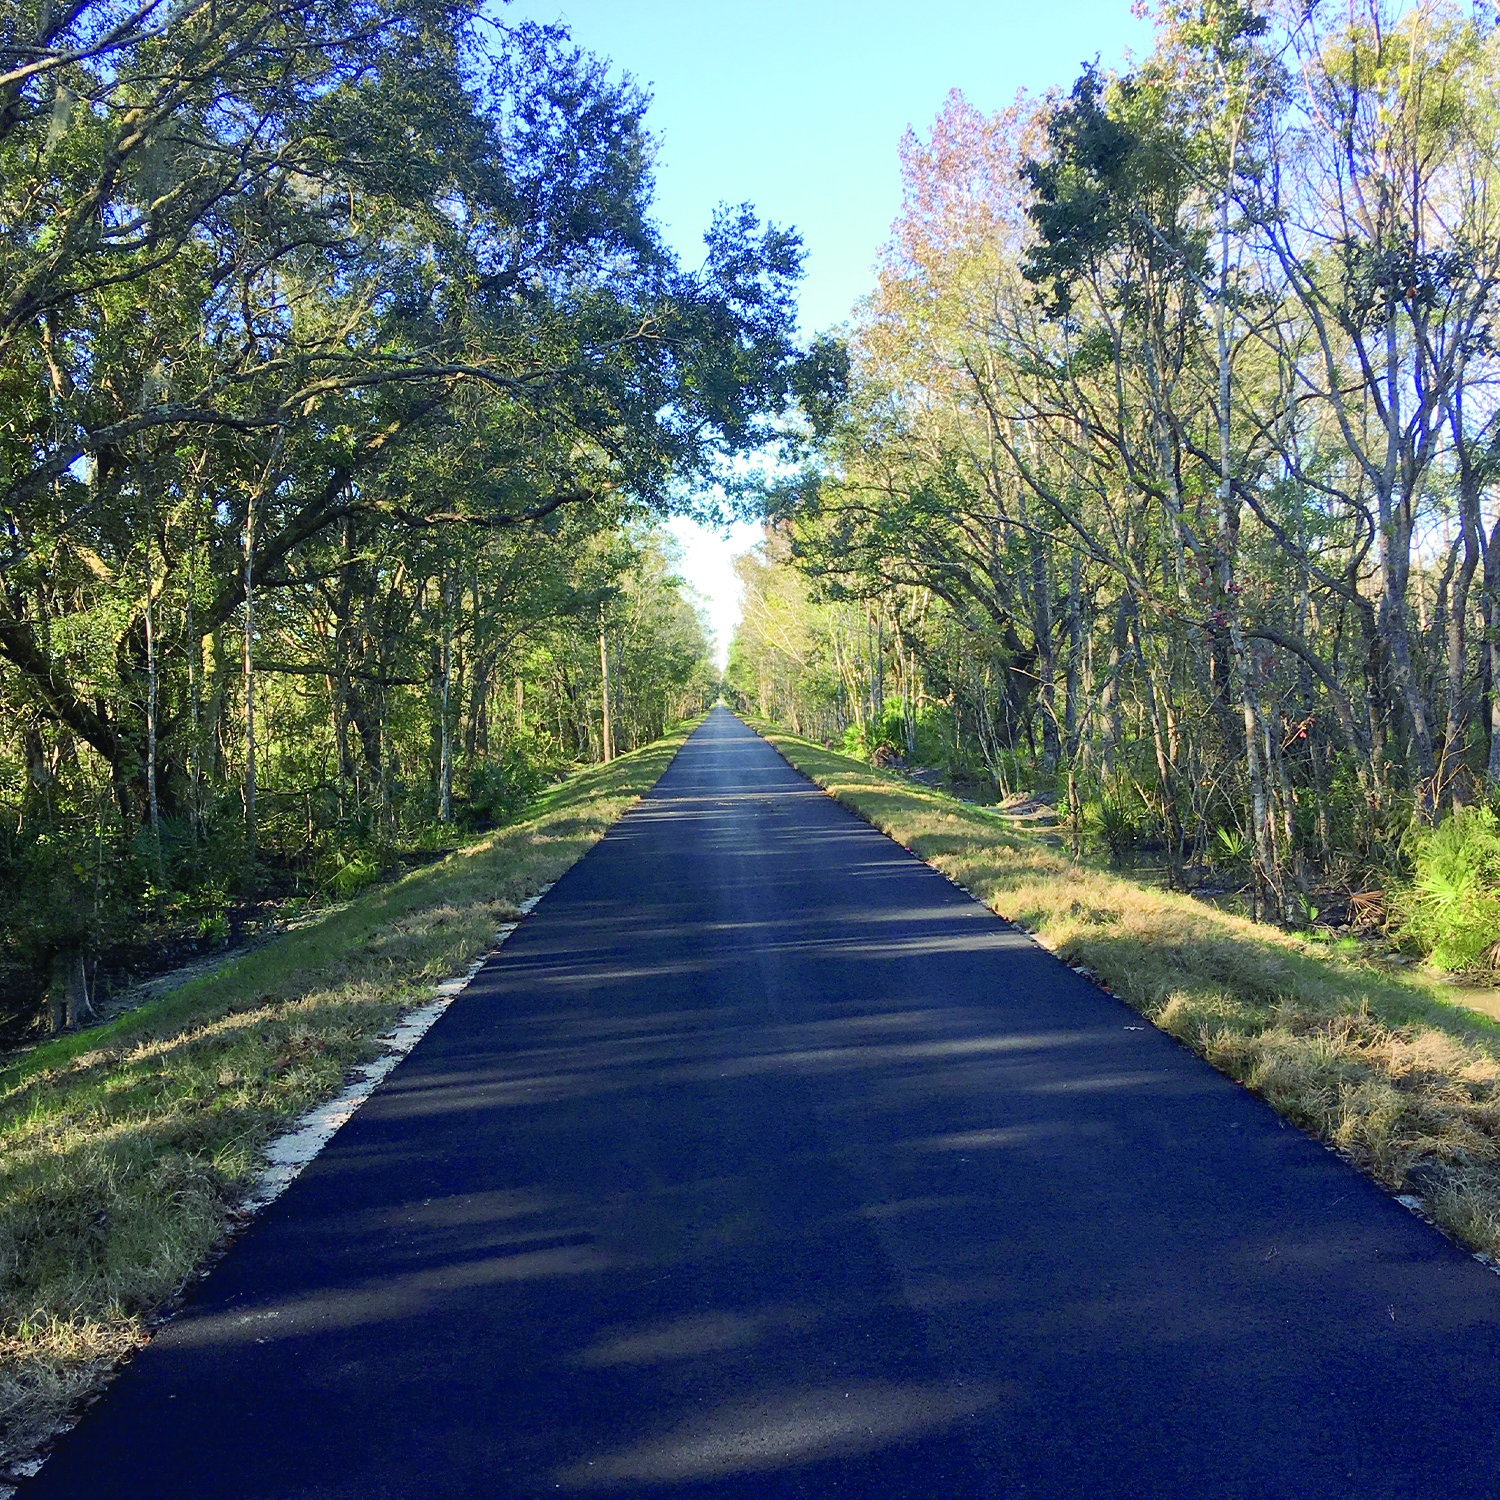 Palatka to St. Augustine State Trail with trees along both sides. Financial Management Numbers: 210286-8, 435796-1